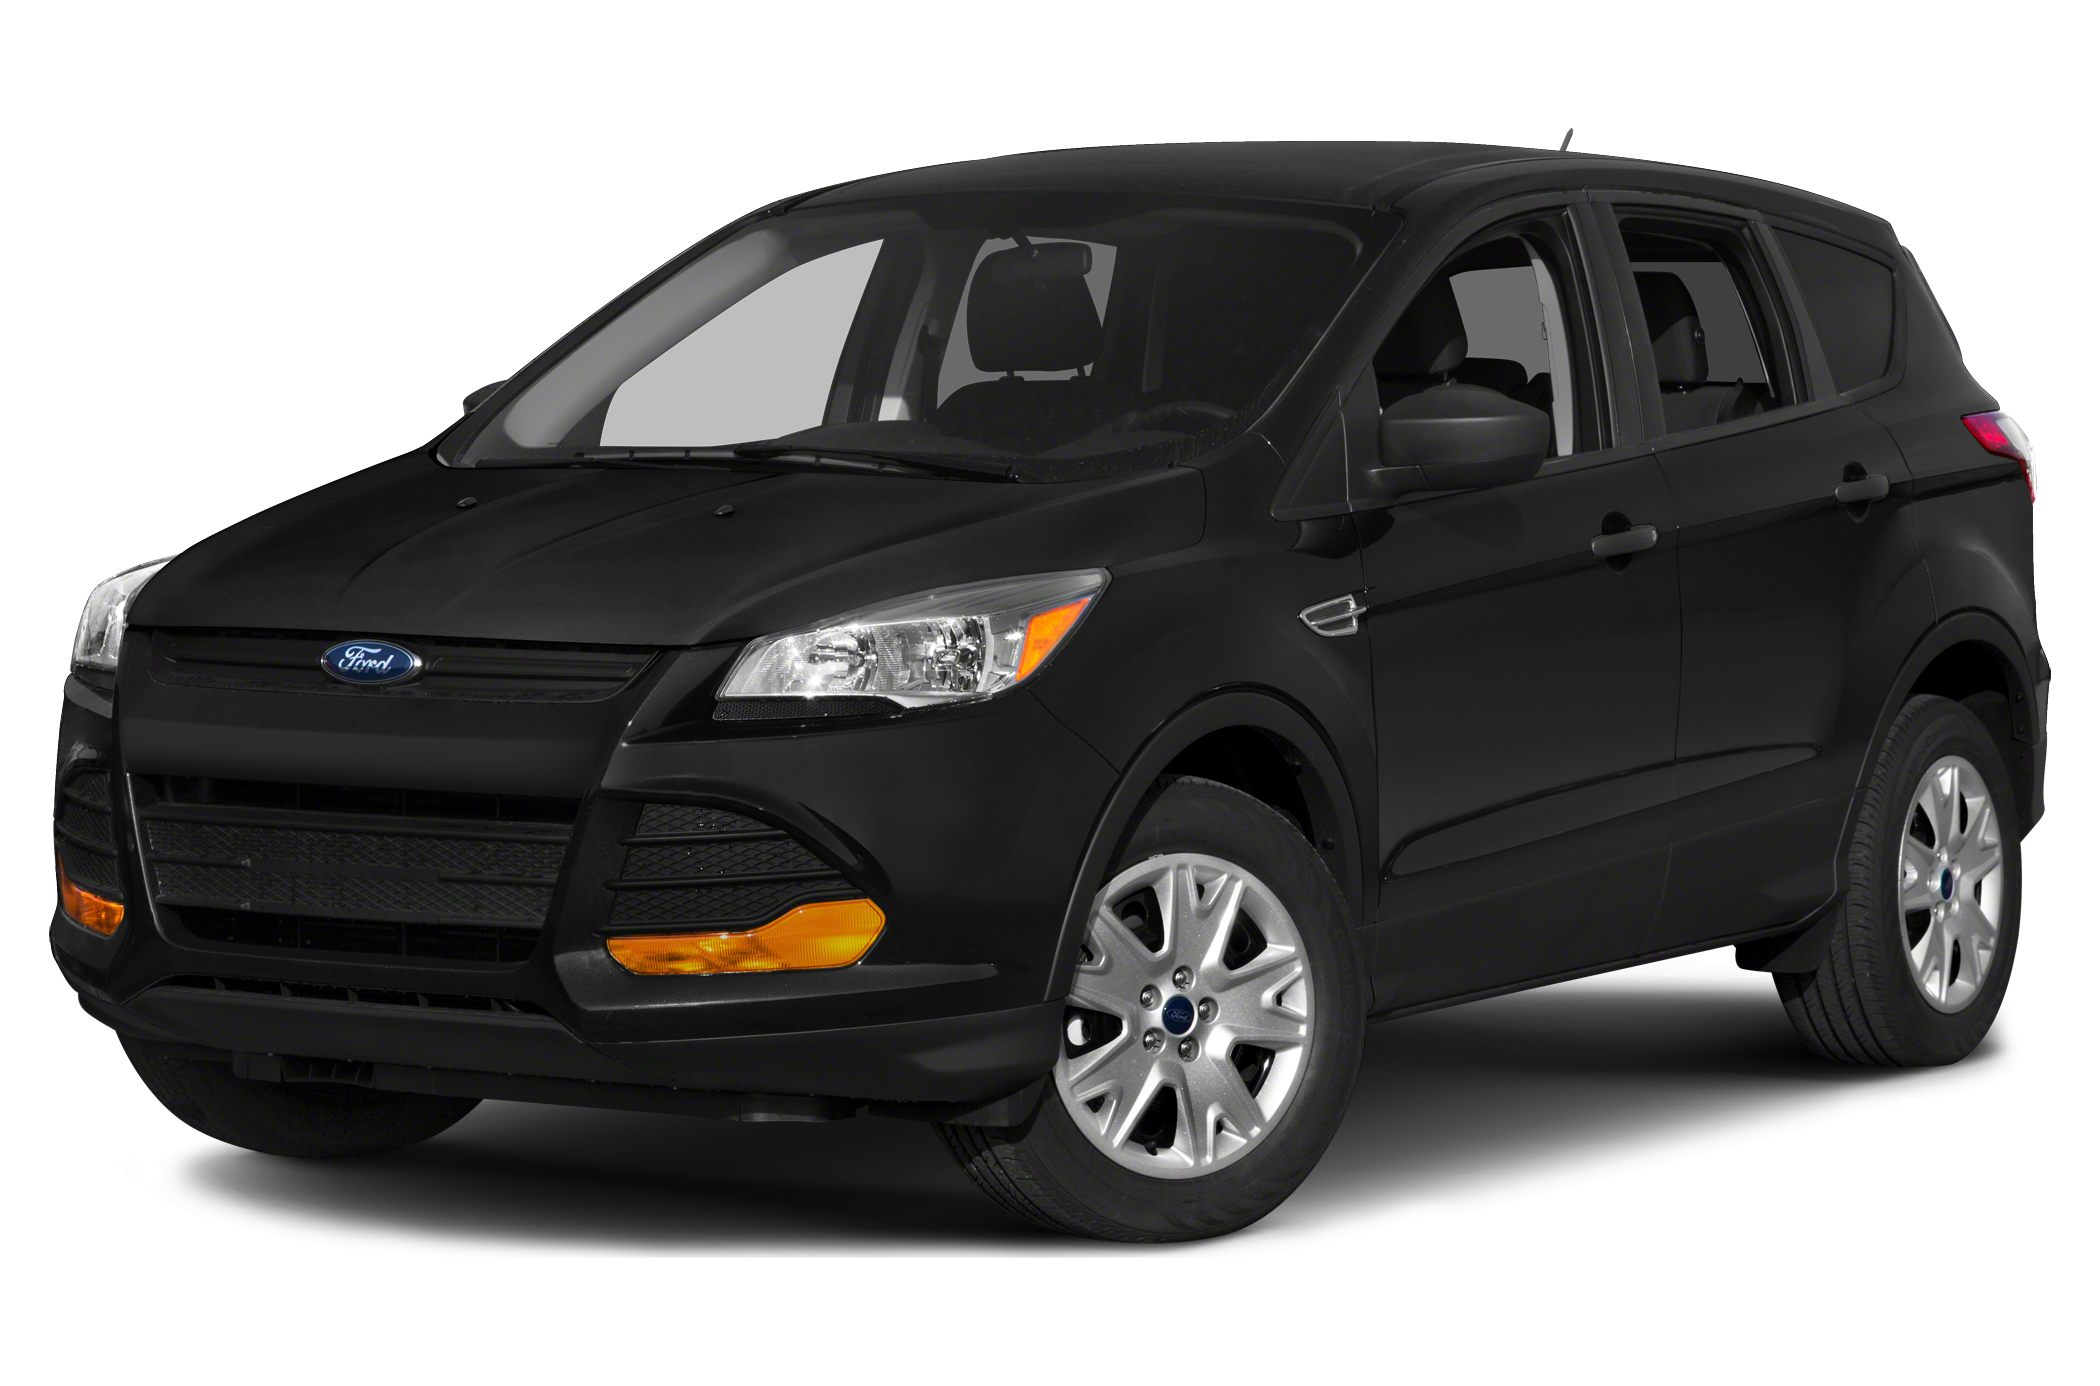 2015 Ford Escape SE SUV for sale in Flat Rock for $27,940 with 6 miles